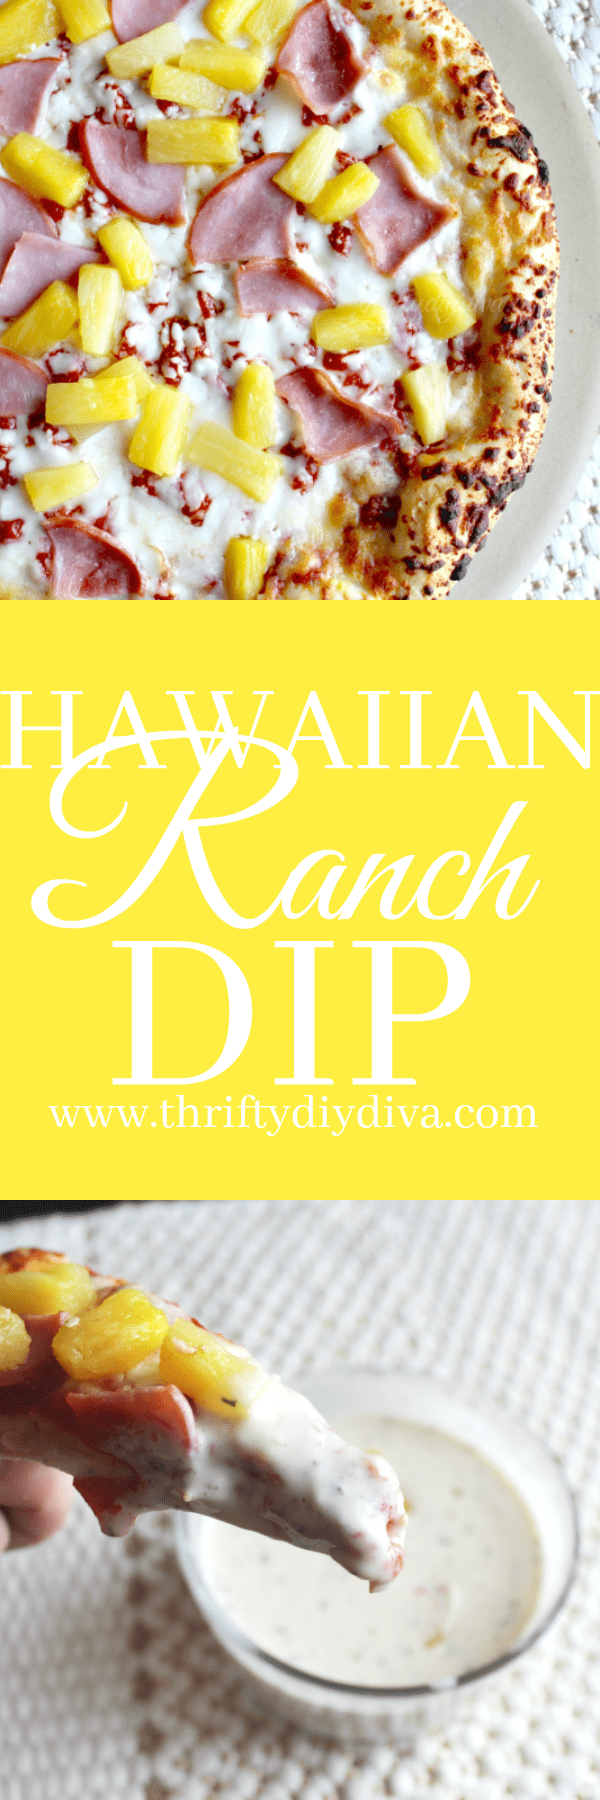 Homemade Pineapple Ranch Dressing (Hawaiian Dip)